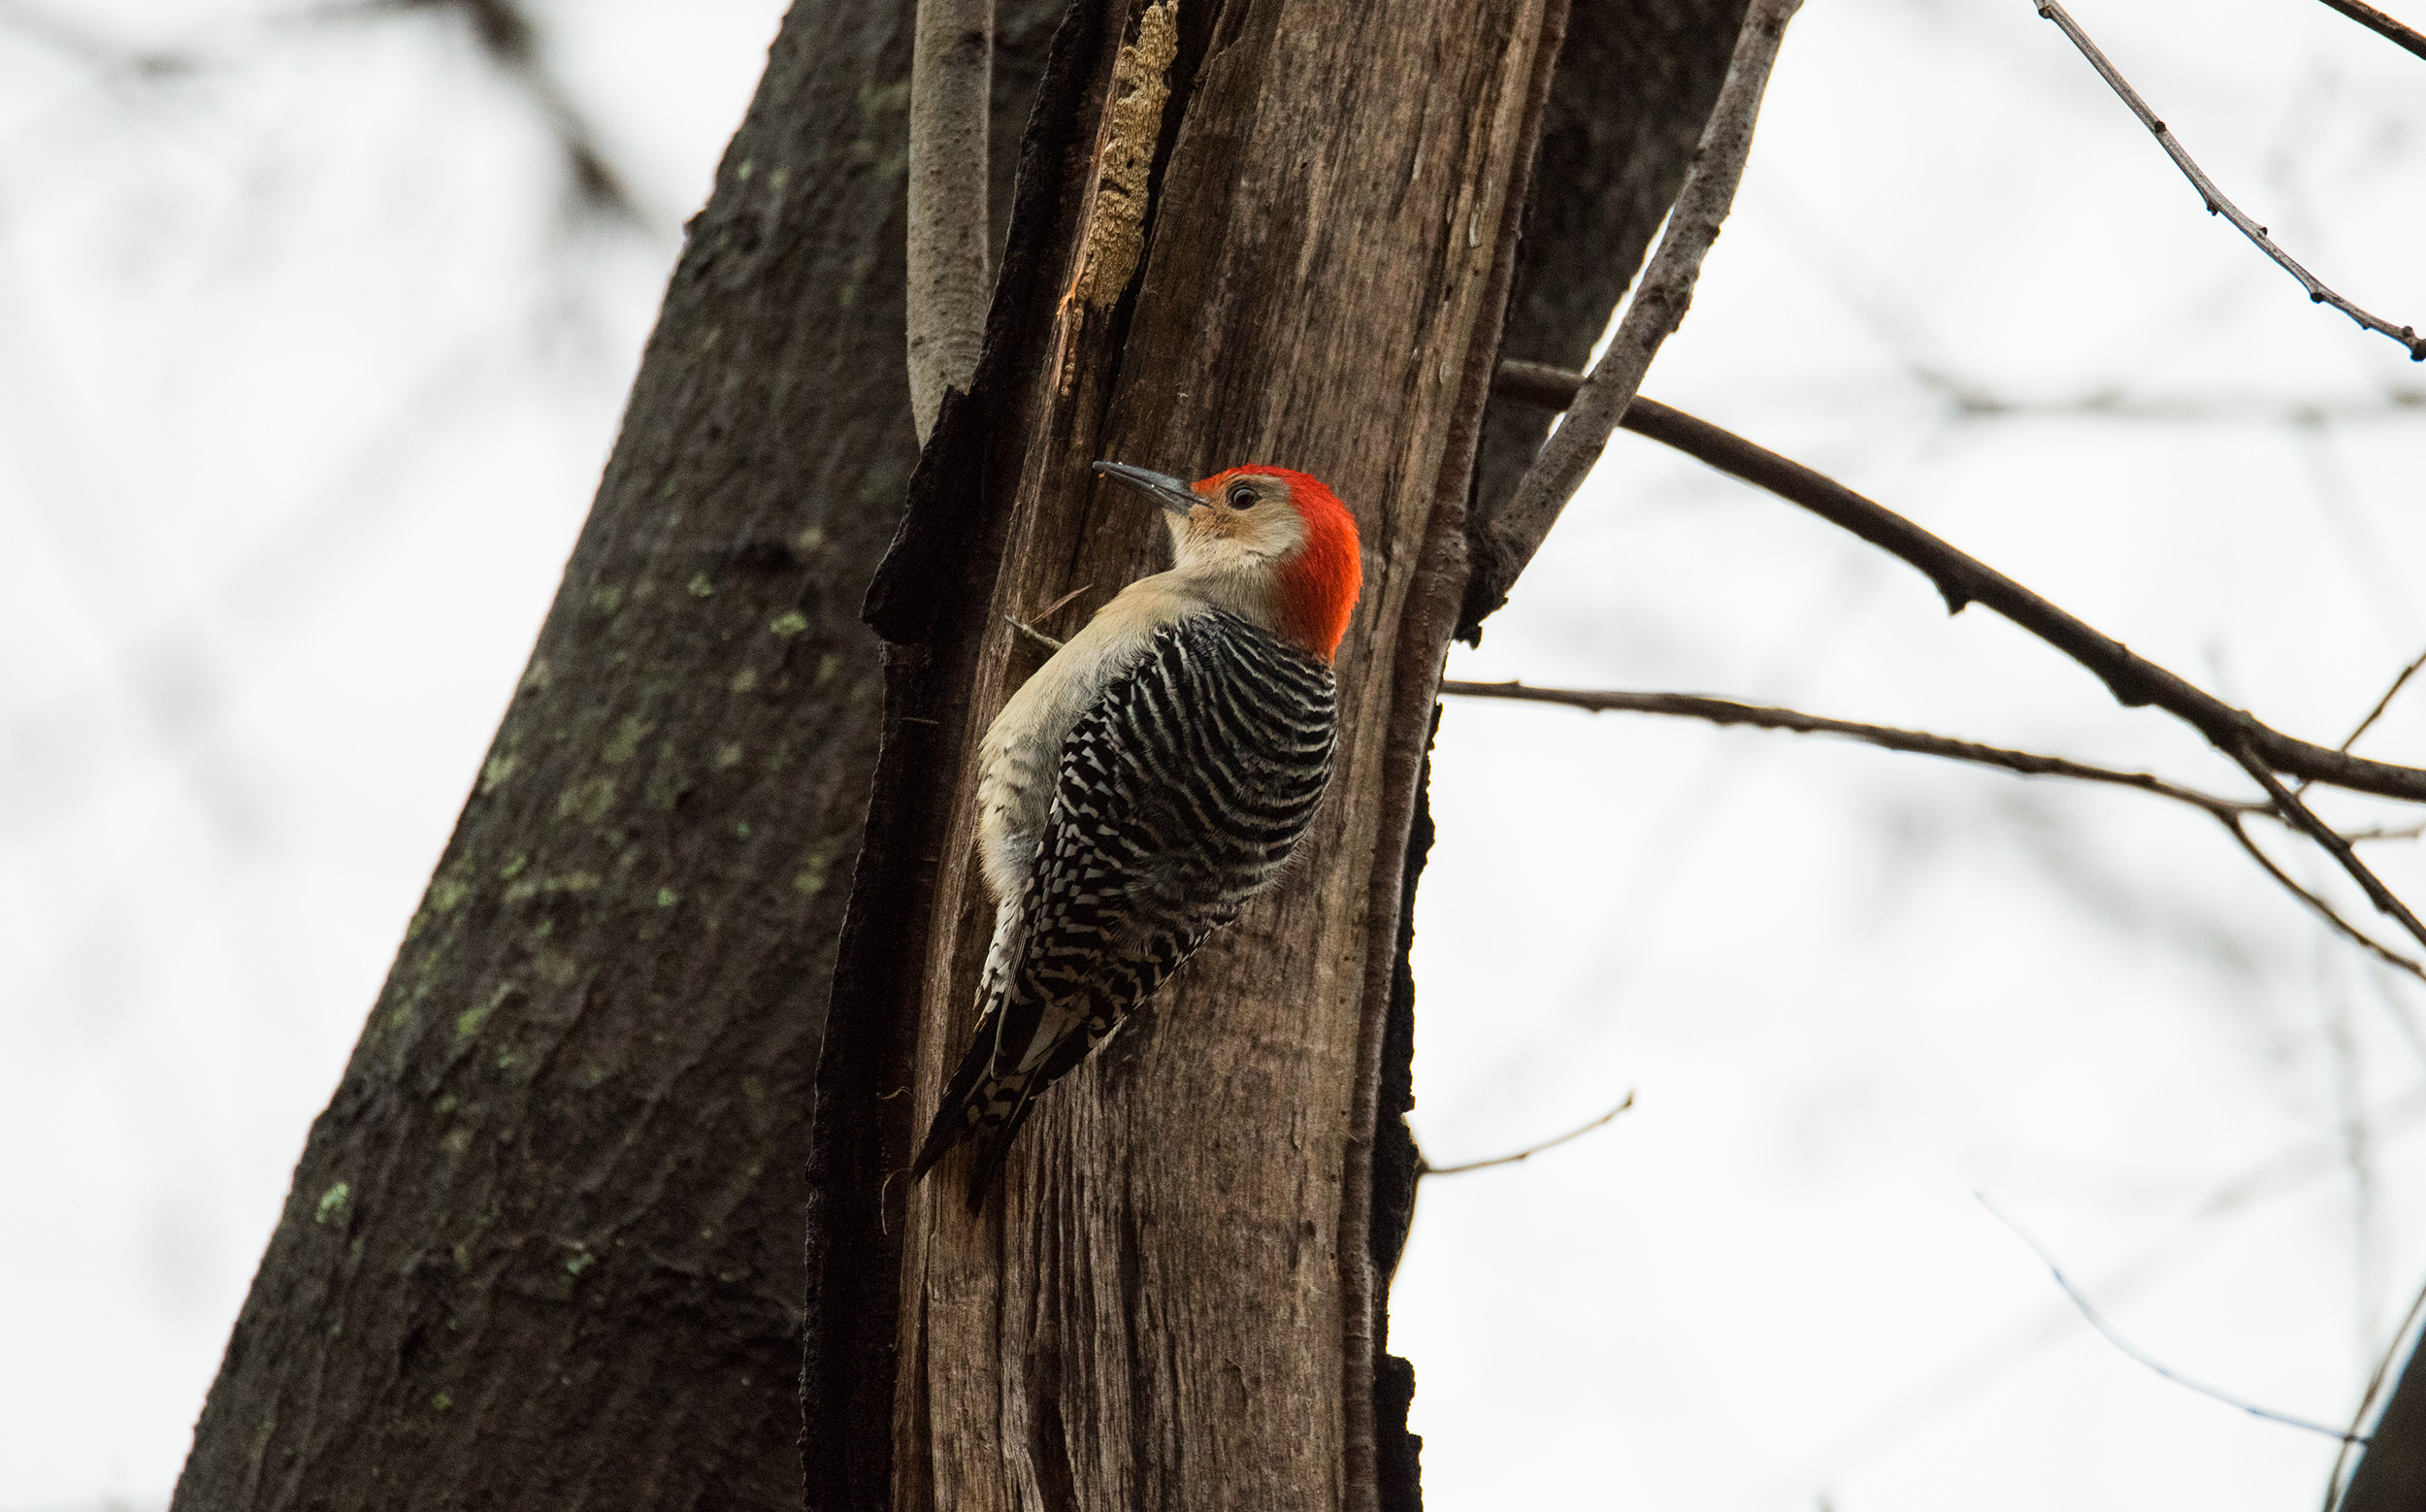 Red-bellied Woodpecker, Piermont, NY, United States